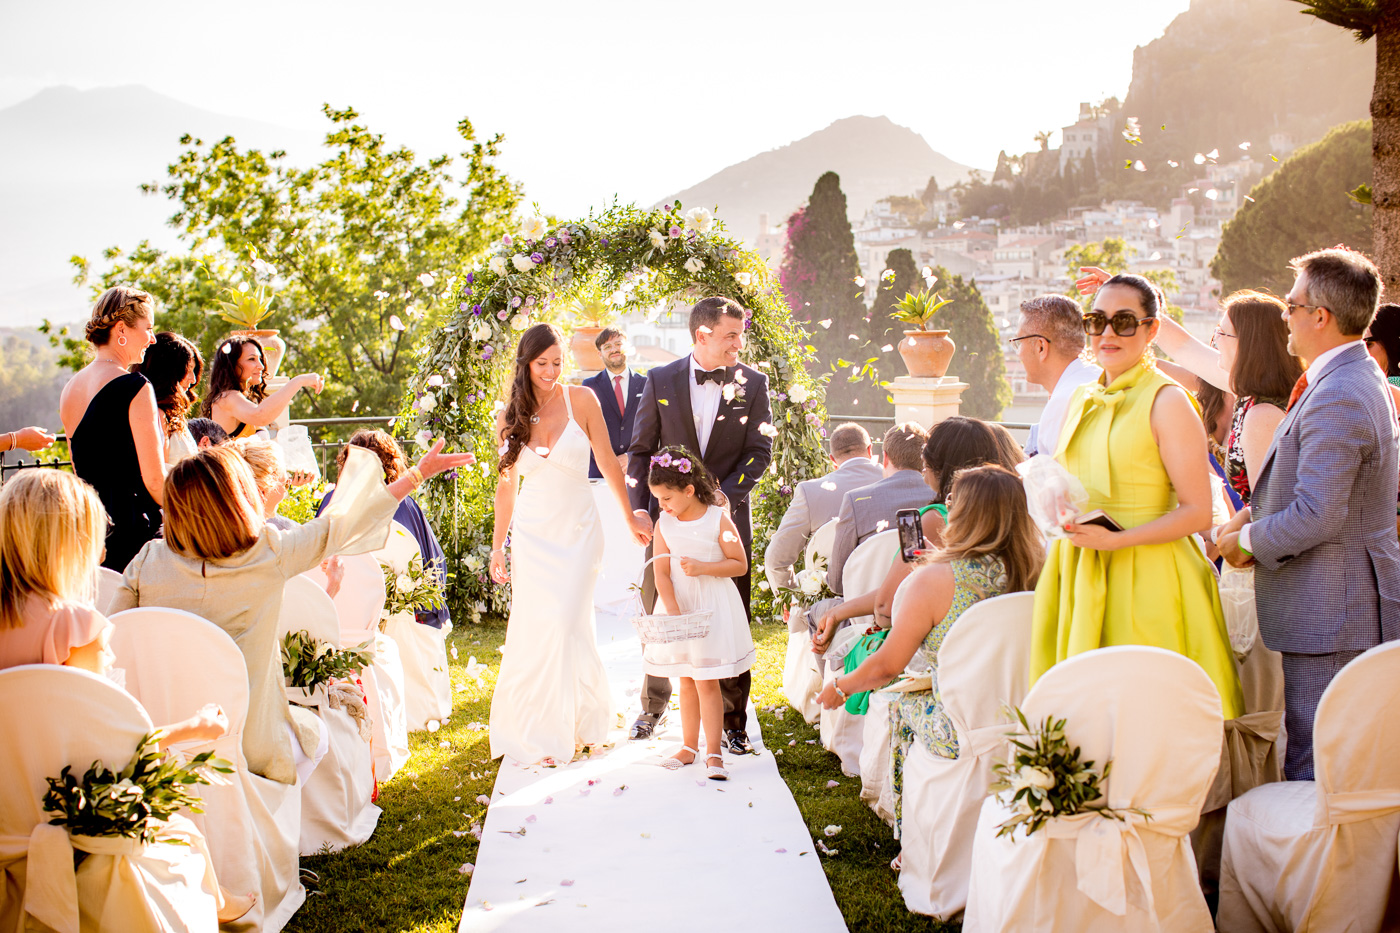 Intimate Wedding Taormina-luxury-venue-belmond-timeo-hotel-ceremony-terrace-sea-view-confetti